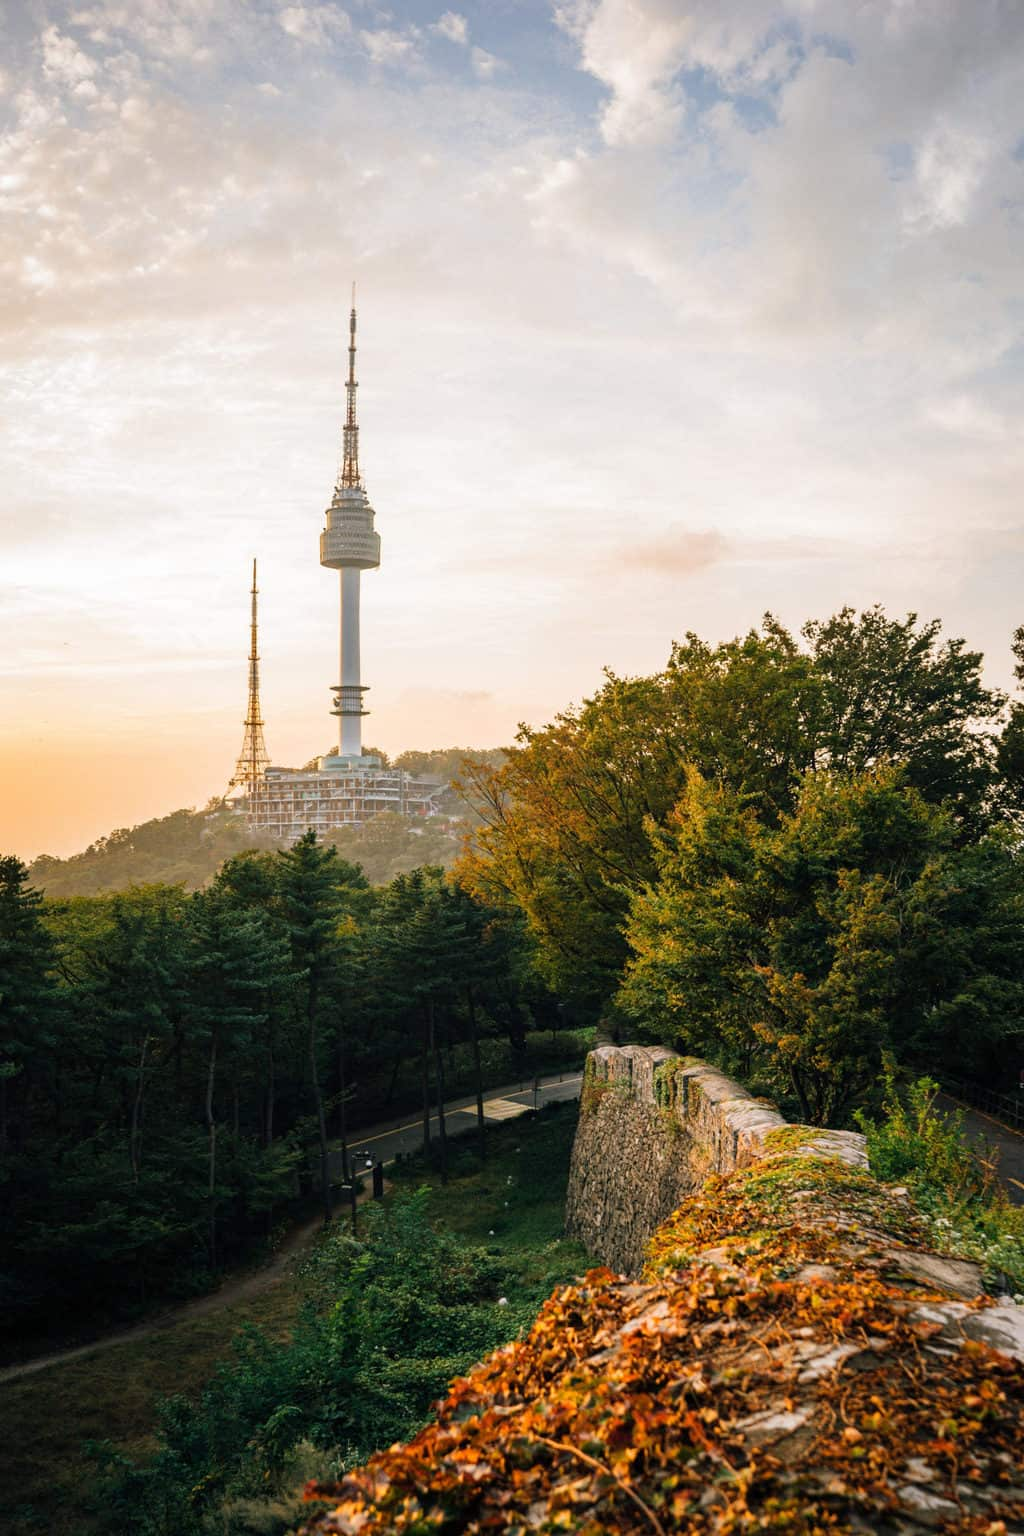 If you are visiting South Korea, you should definitely plan some time in Seoul. Read on for the spots you shouldn't miss in Seoul, South Korea. #SouthKorea #Korea #thingstodoinSeoul